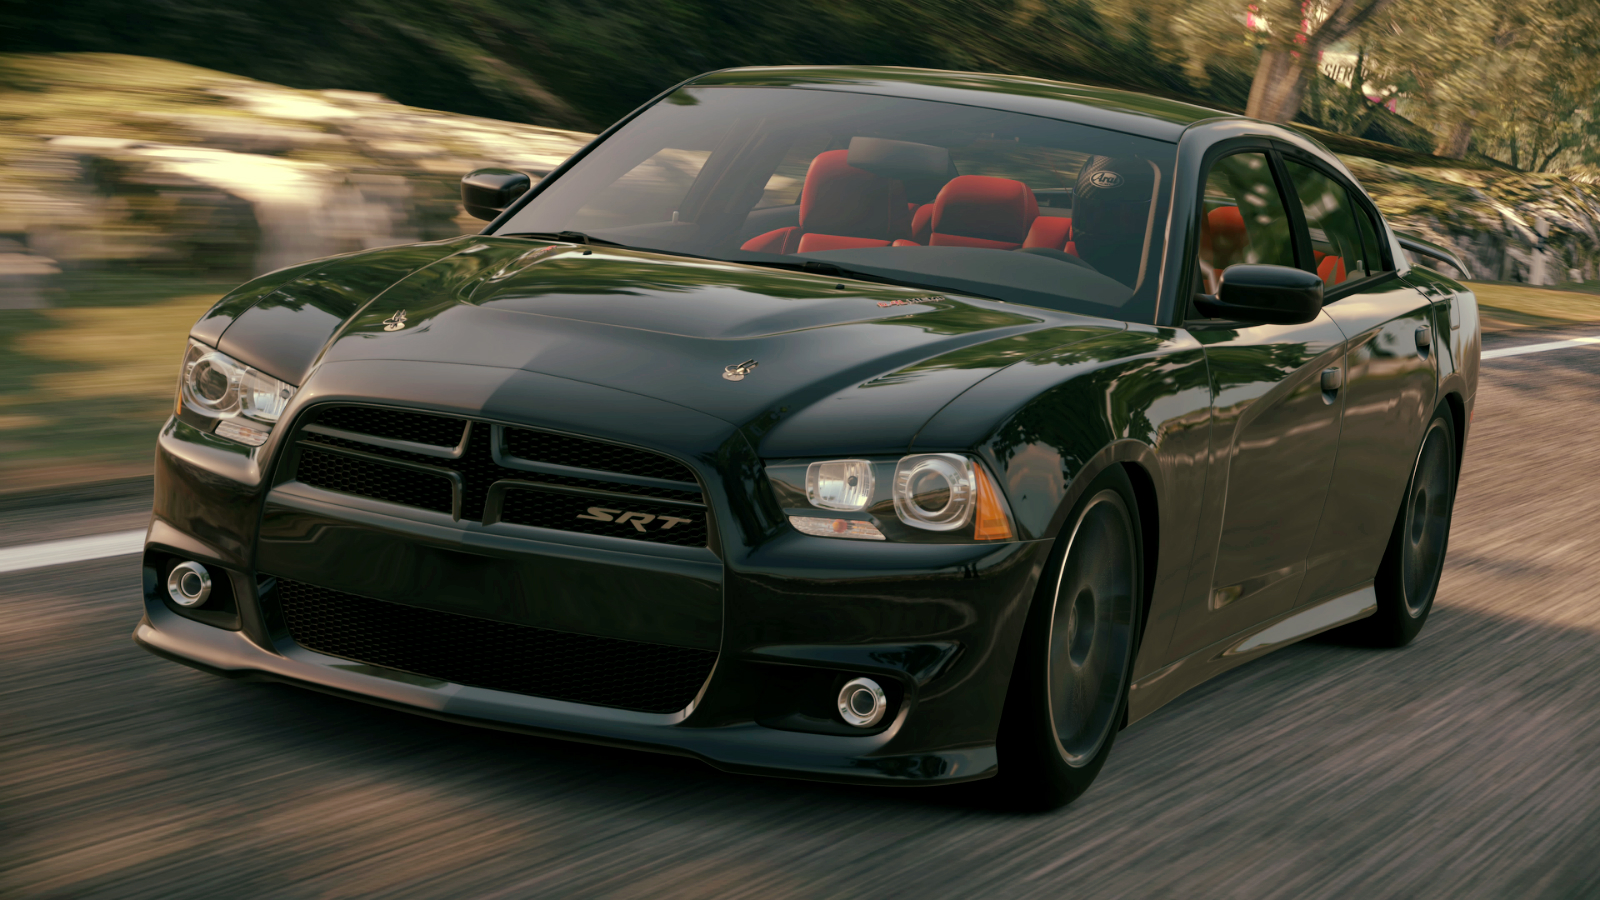 2011 Dodge Charger Srt8 Gran Turismo 6 By Vertualissimo